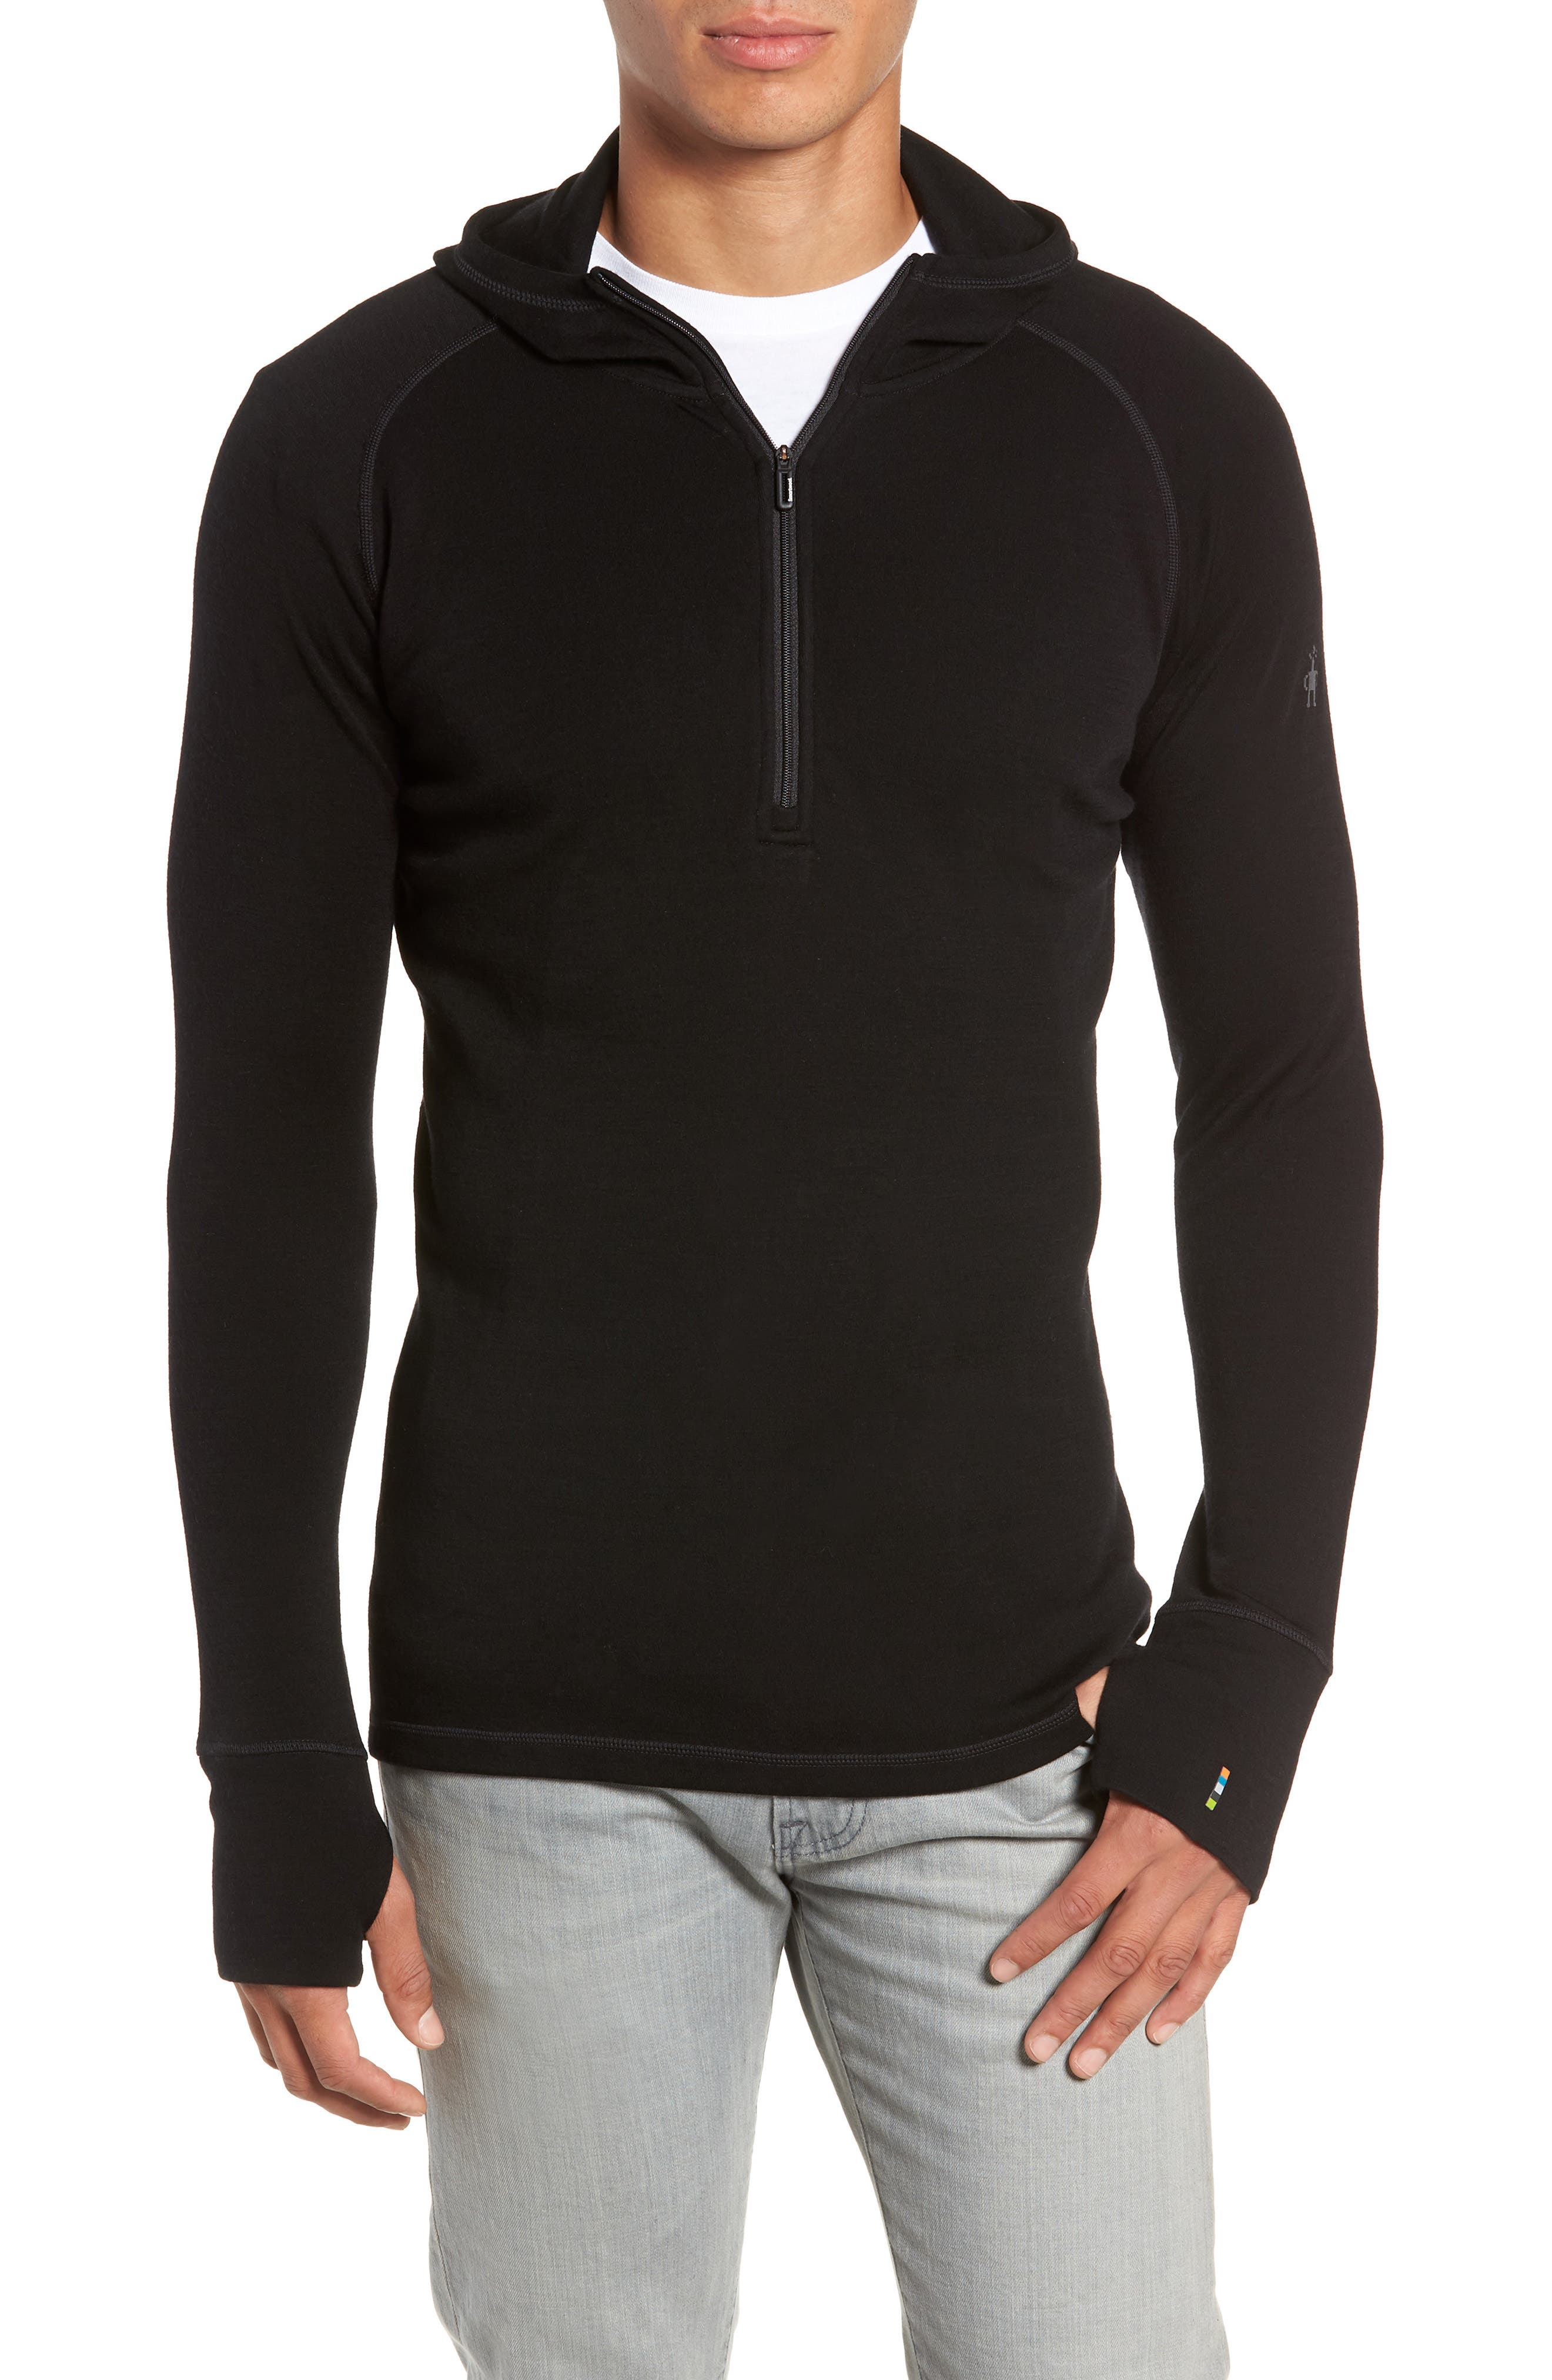 Merino 250 Base Layer Hooded Pullover,                             Main thumbnail 1, color,                             BLACK